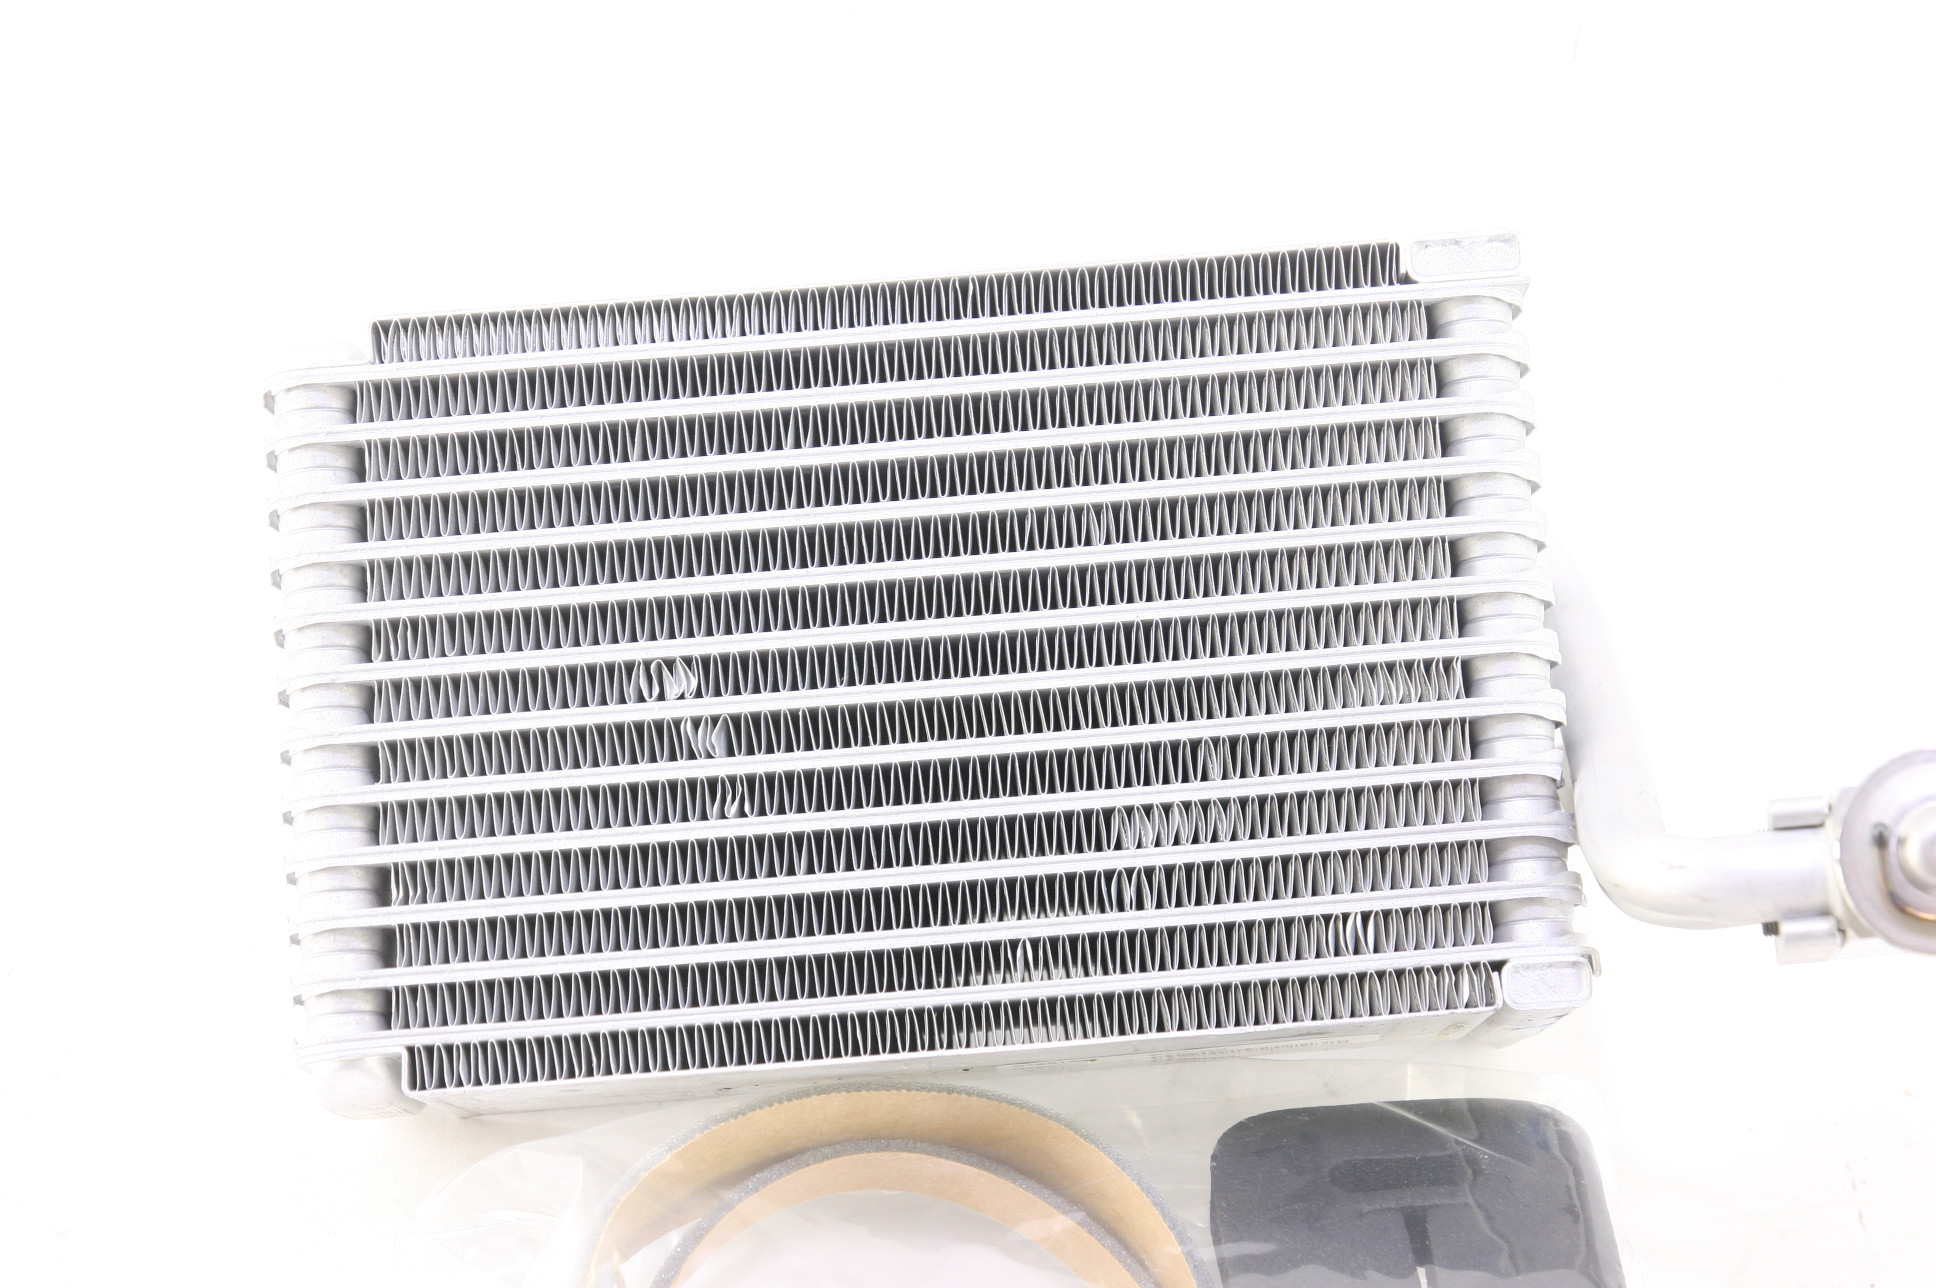 *~ New Mopar OEM CNTKX210AA Evaporator Air Conditioning Caravan Free Shipping - image 3